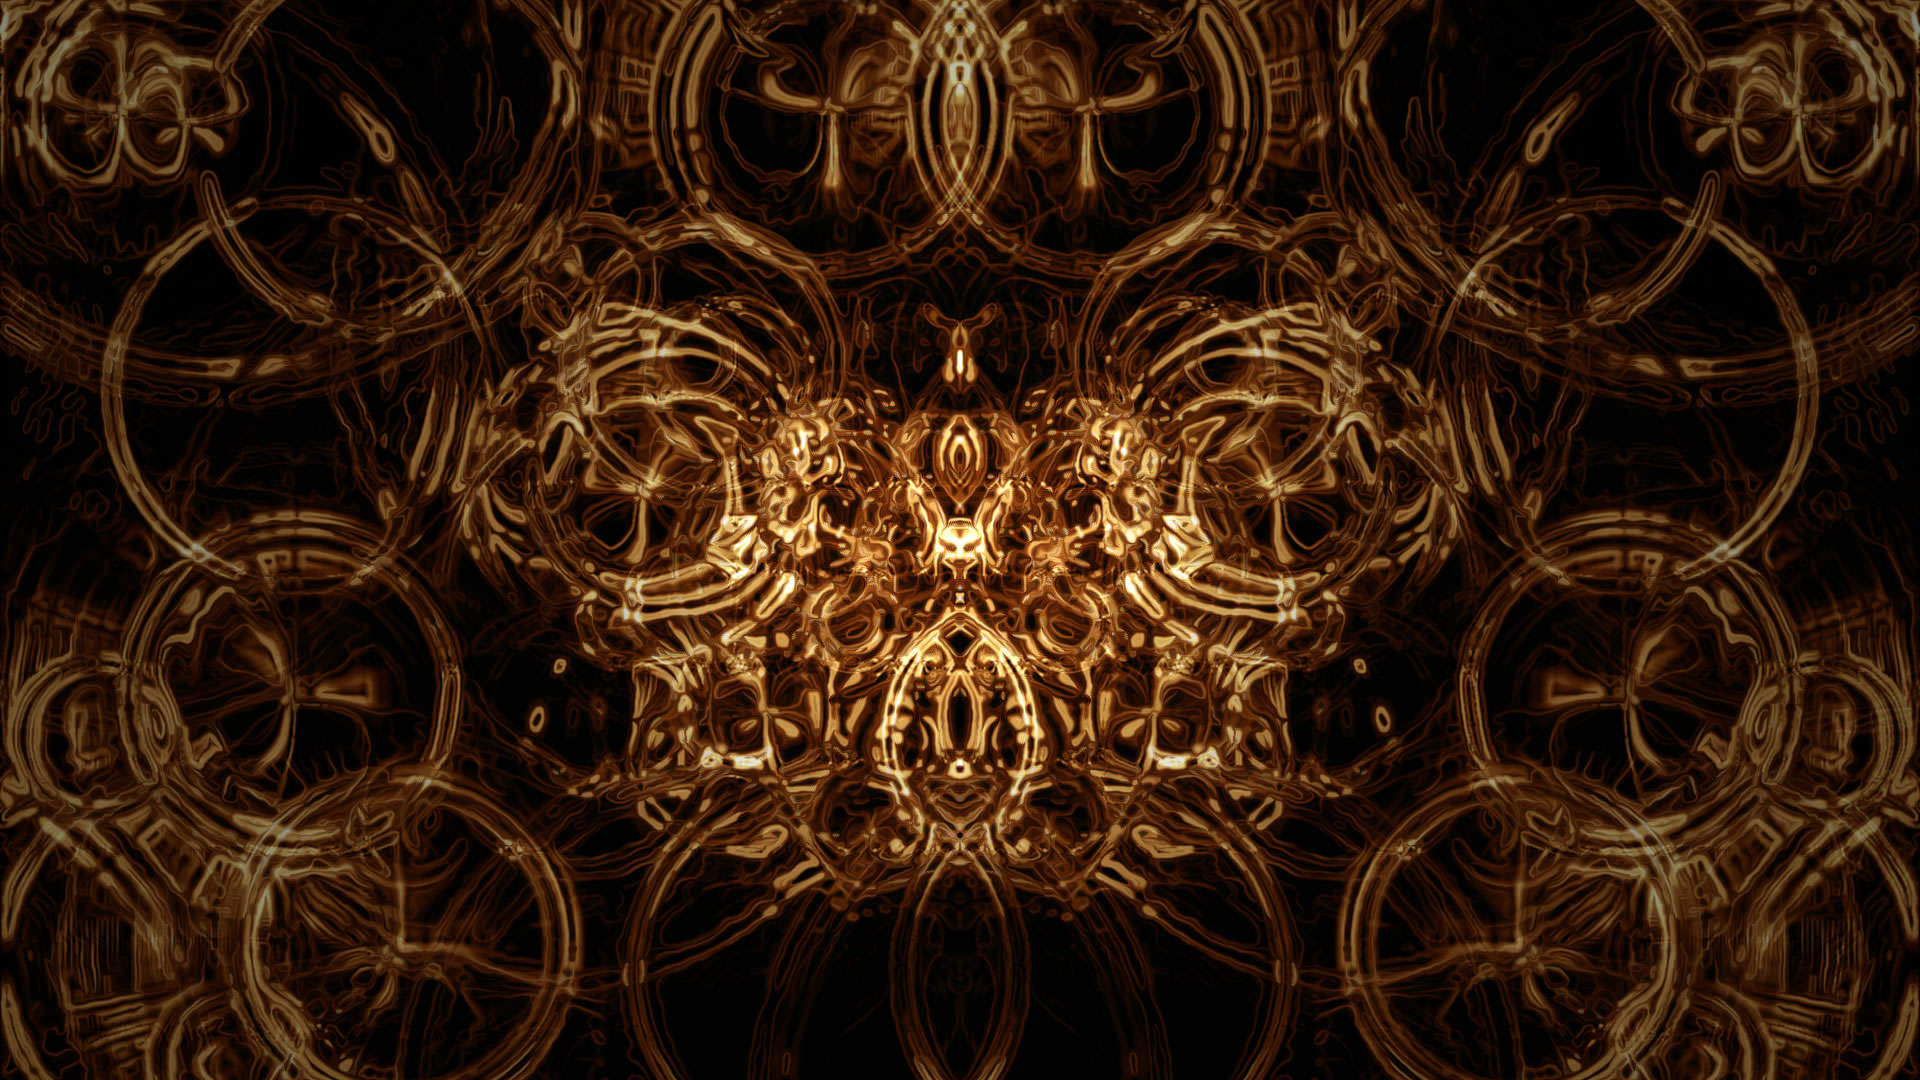 ... wallpaper right click on image and choose set as background wallpaper: wallpaperstop.com/wallpapers/3d-wallpapers/fractal-wallpapers...